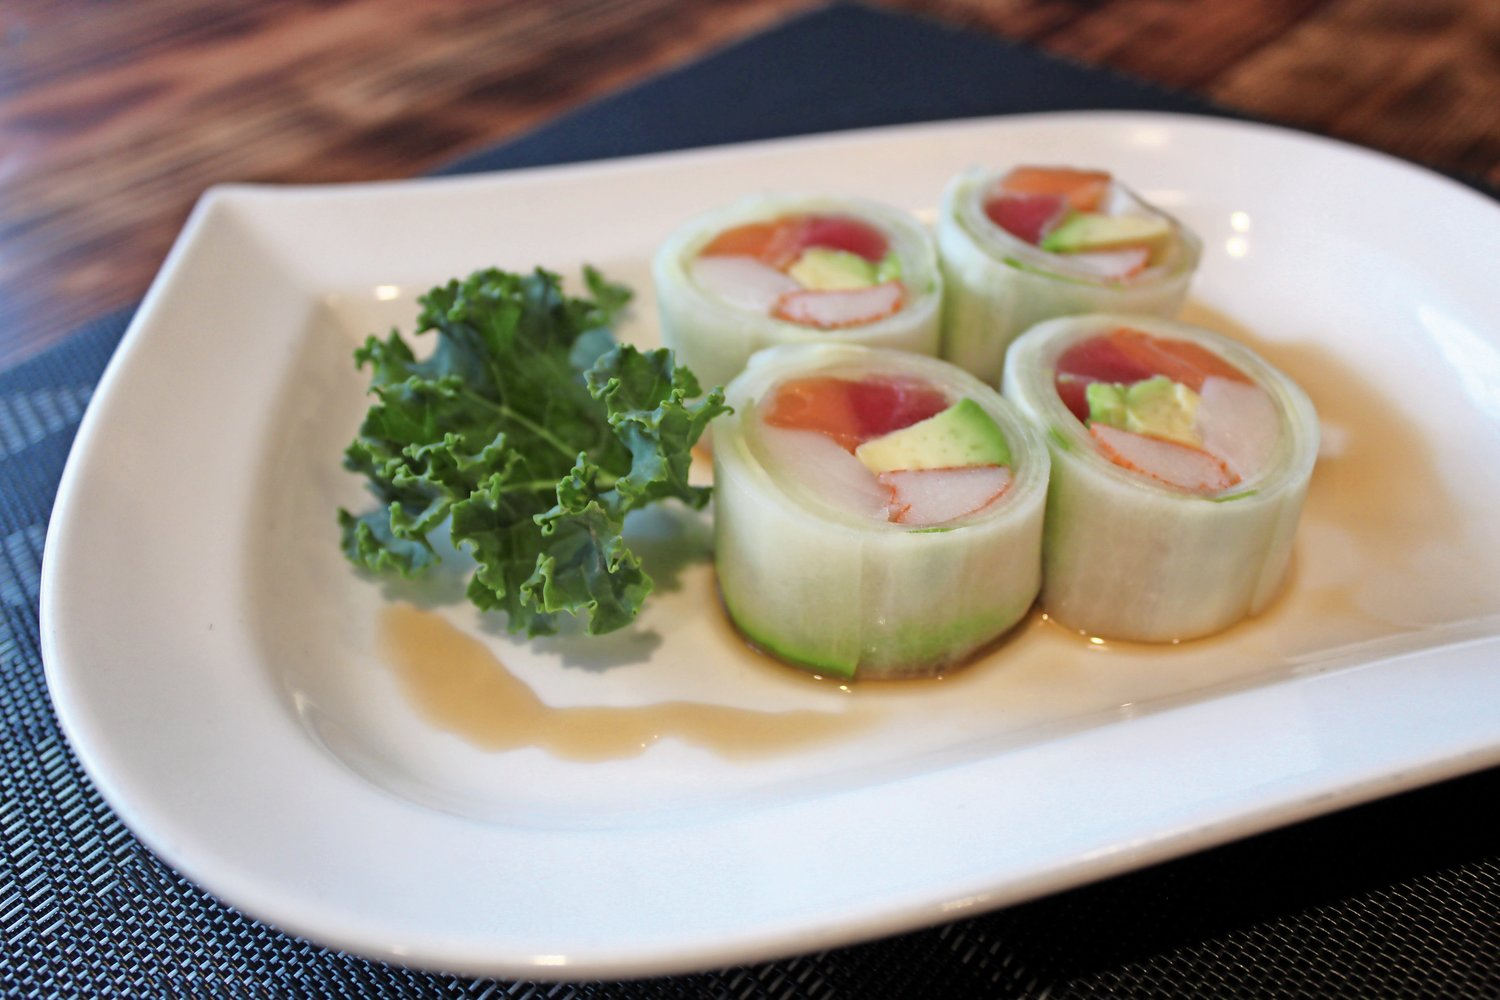 Fuji Seoul's rainbow naruto roll features tuna, salmon, whitefish, crab and avocado wrapped in thin slices of cucumber.